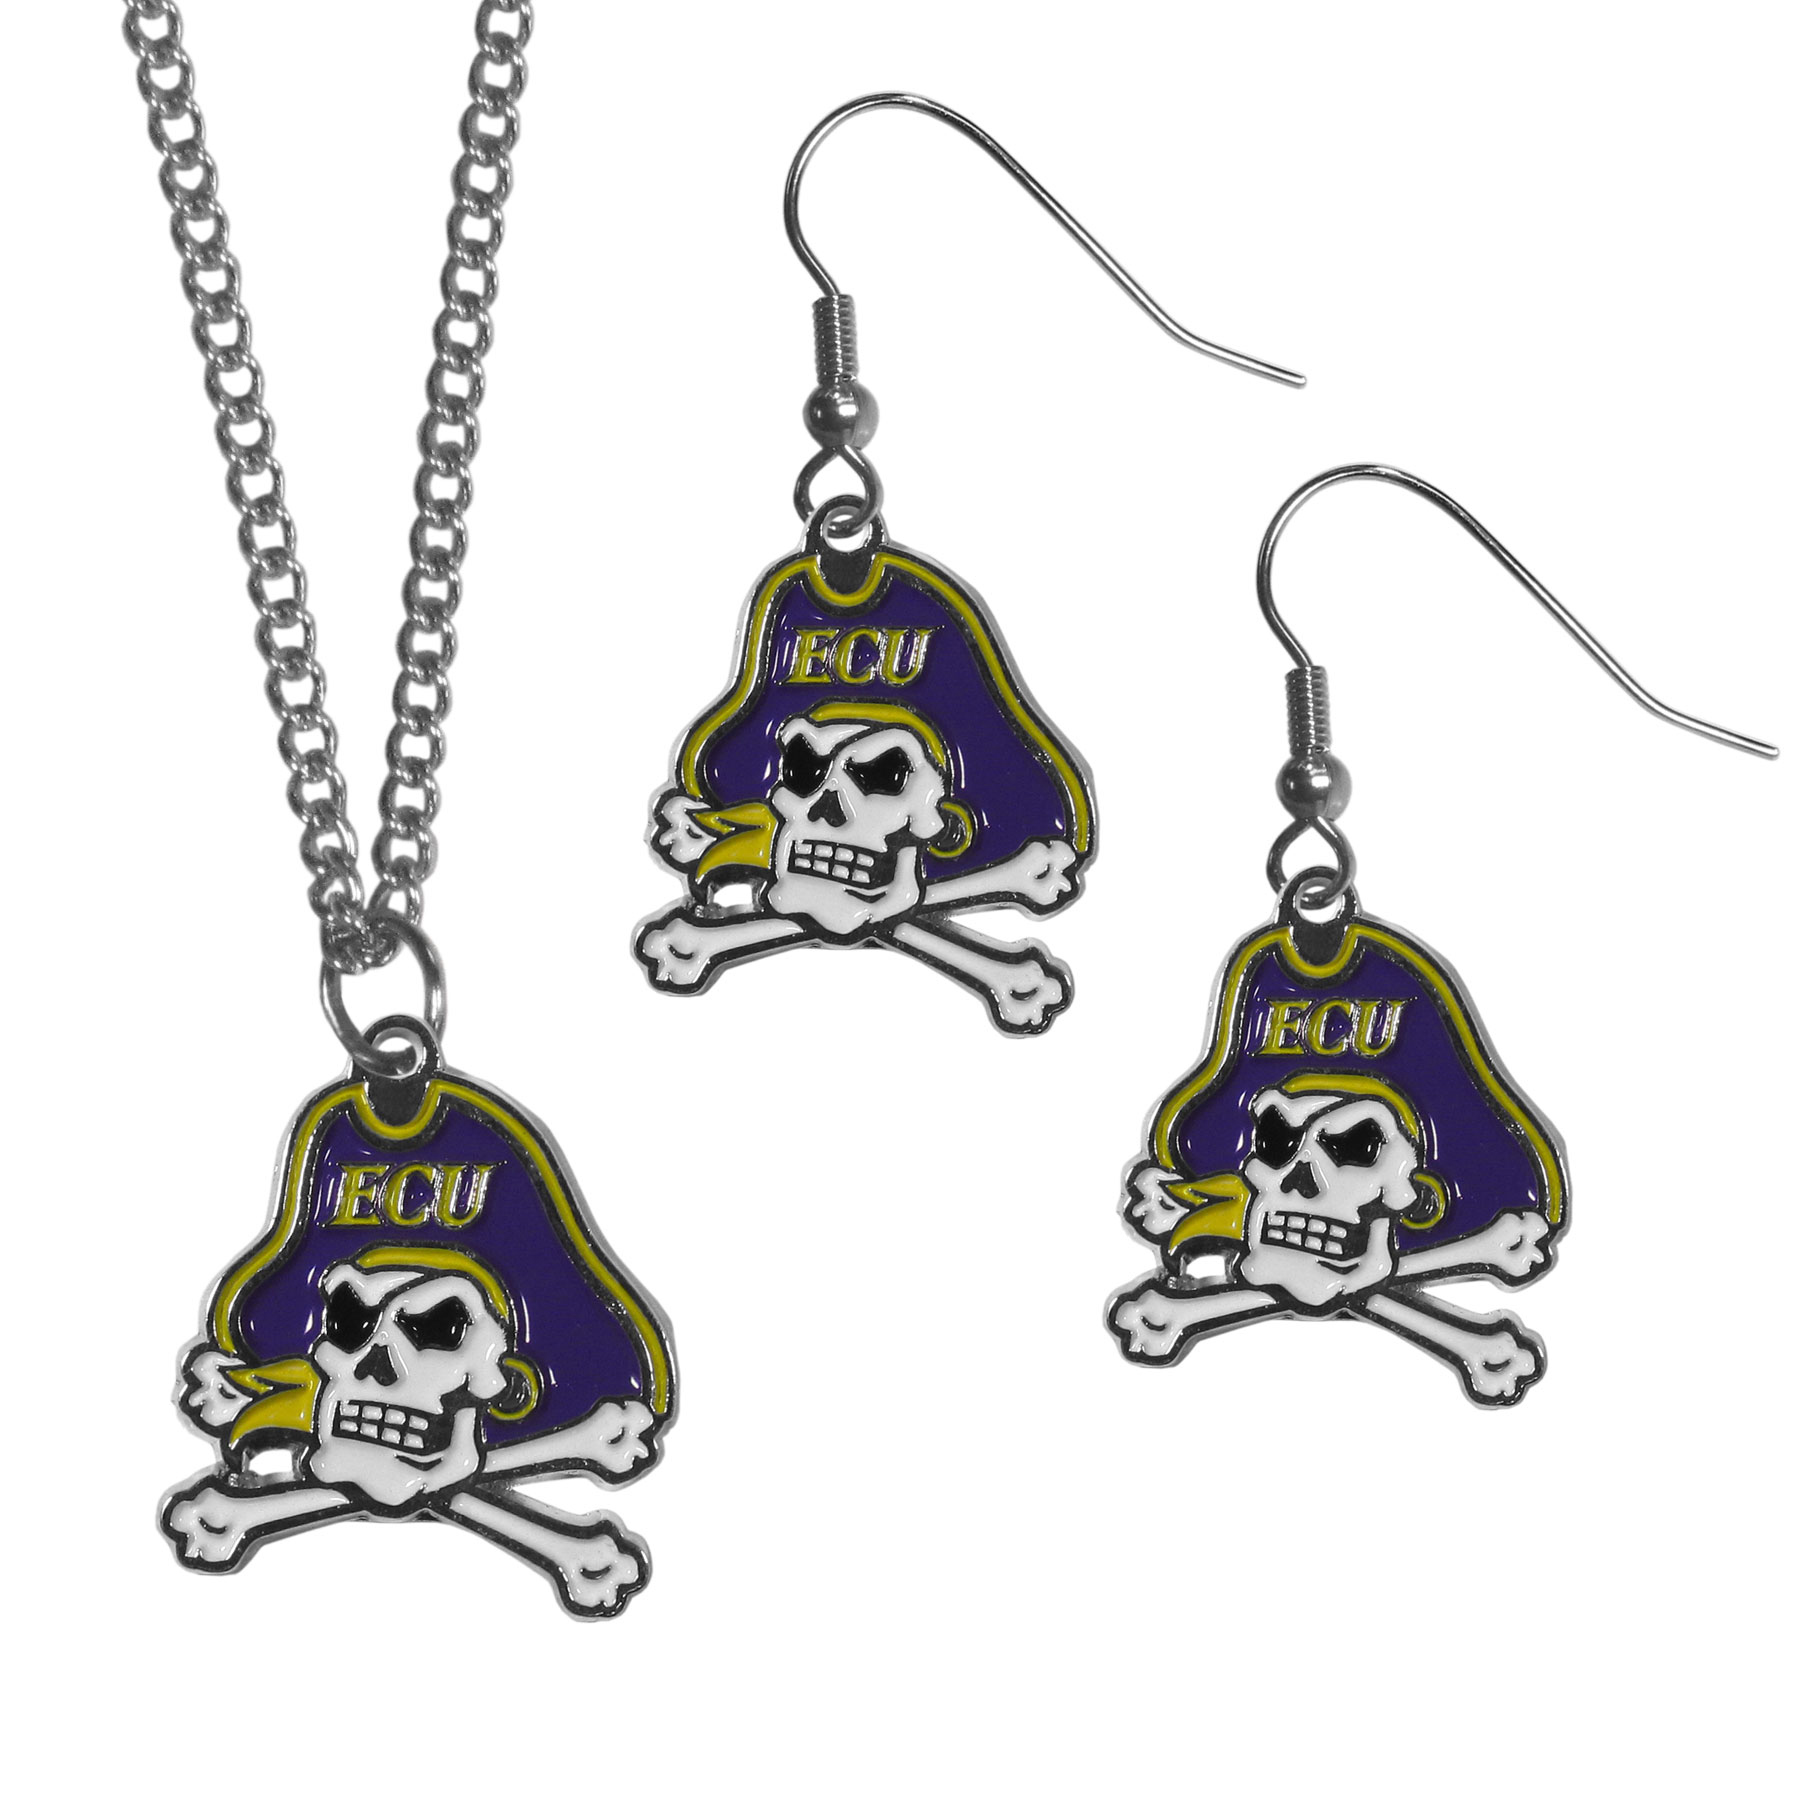 East Carolina Pirates Dangle Earrings and Chain Necklace Set - This classic jewelry set contains are most popular East Carolina Pirates dangle earrings and 22 inch chain necklace. The trendy, dangle earrings are lightweight and feature a fully cast metal team charm with enameled team colors. The matching necklace completes this fashion forward combo and is a spirited set that is perfect for game day but nice enough for everyday.